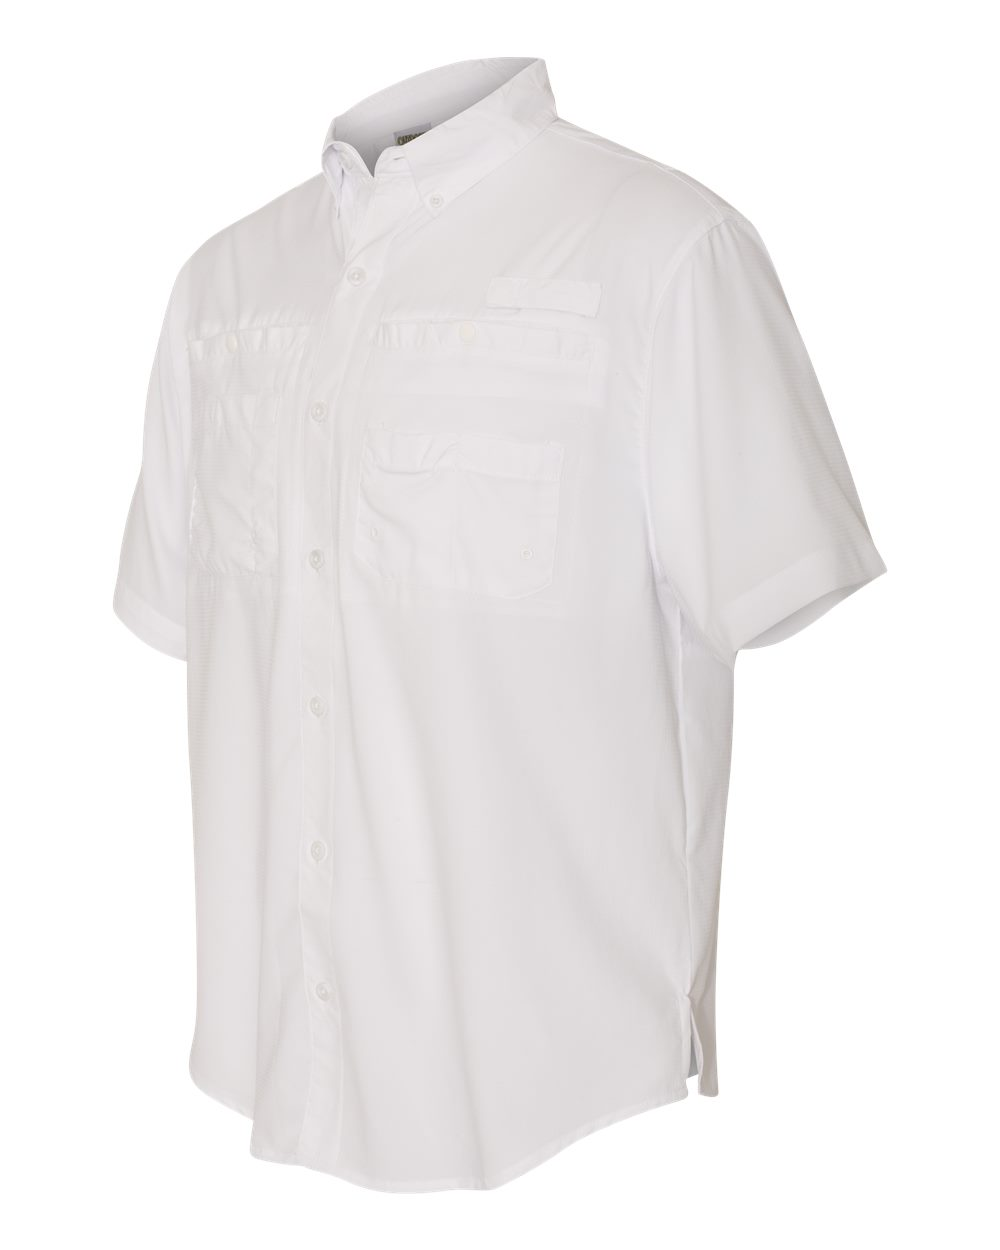 Hilton ZP2297 - Baja Short Sleeve Fishing Shirt